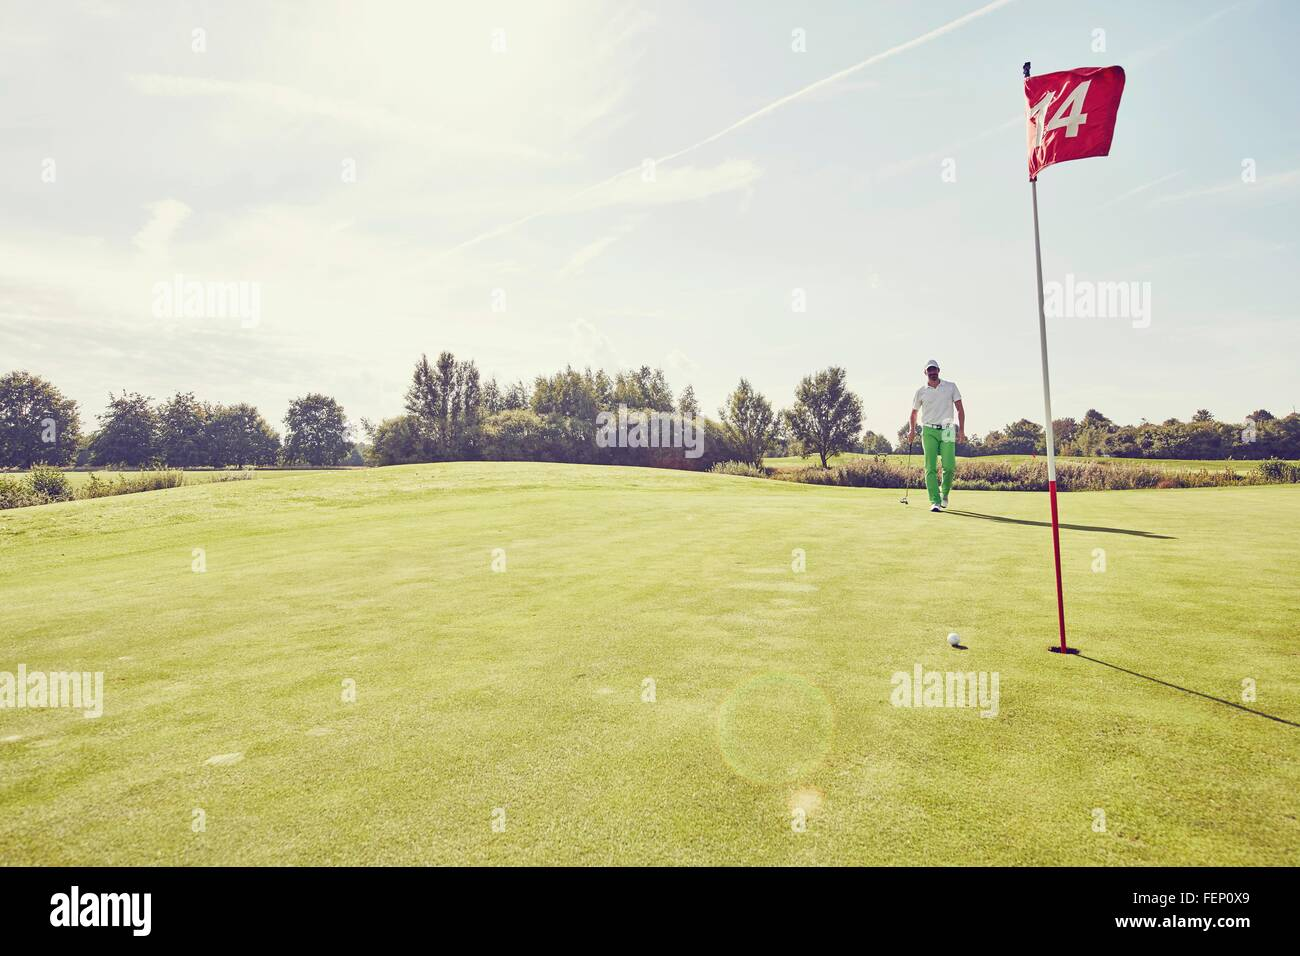 Golfer playing golf, near 14th hole, Korschenbroich, Dusseldorf, Germany - Stock Image